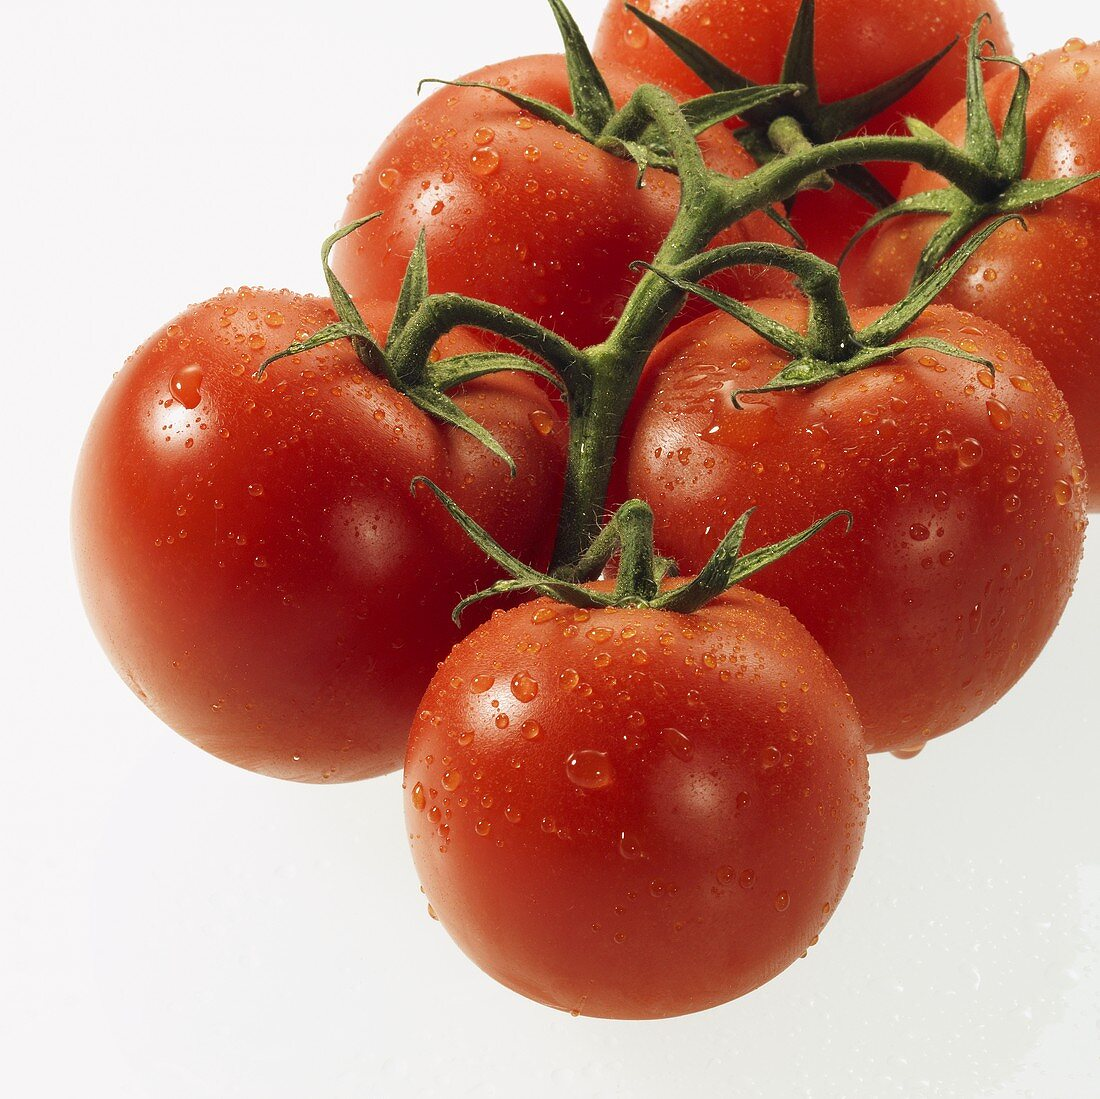 Tomatoes on the vine with drops of water